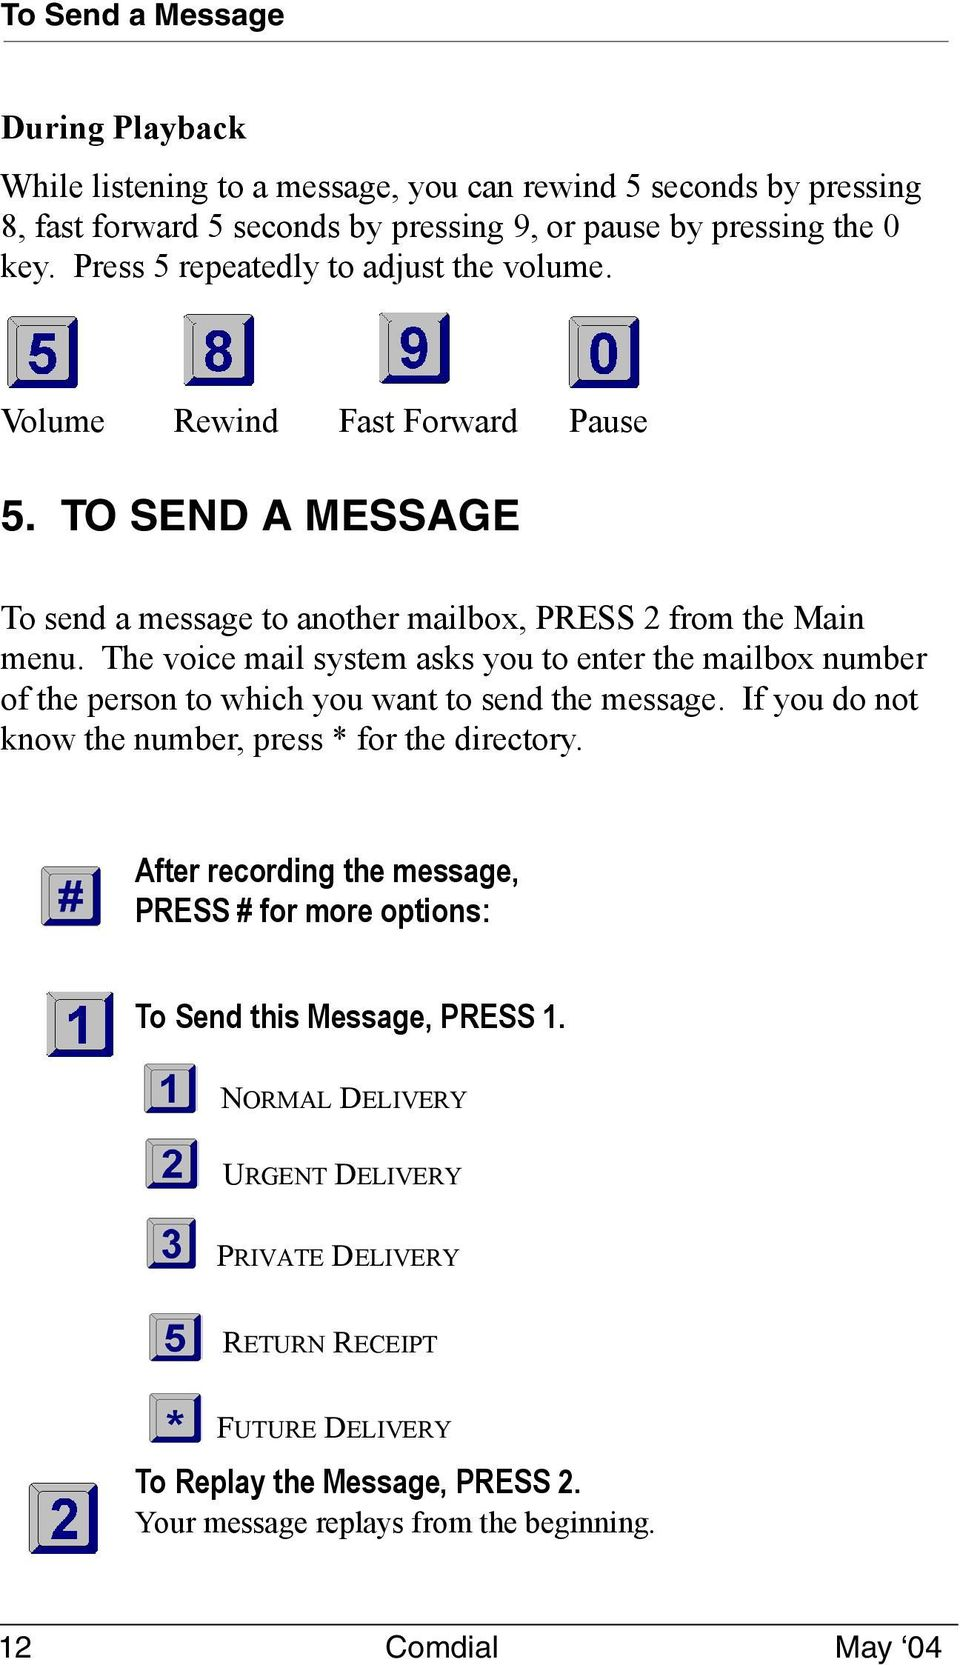 The voice mail system asks you to enter the mailbox number of the person to which you want to send the message. If you do not know the number, press * for the directory.